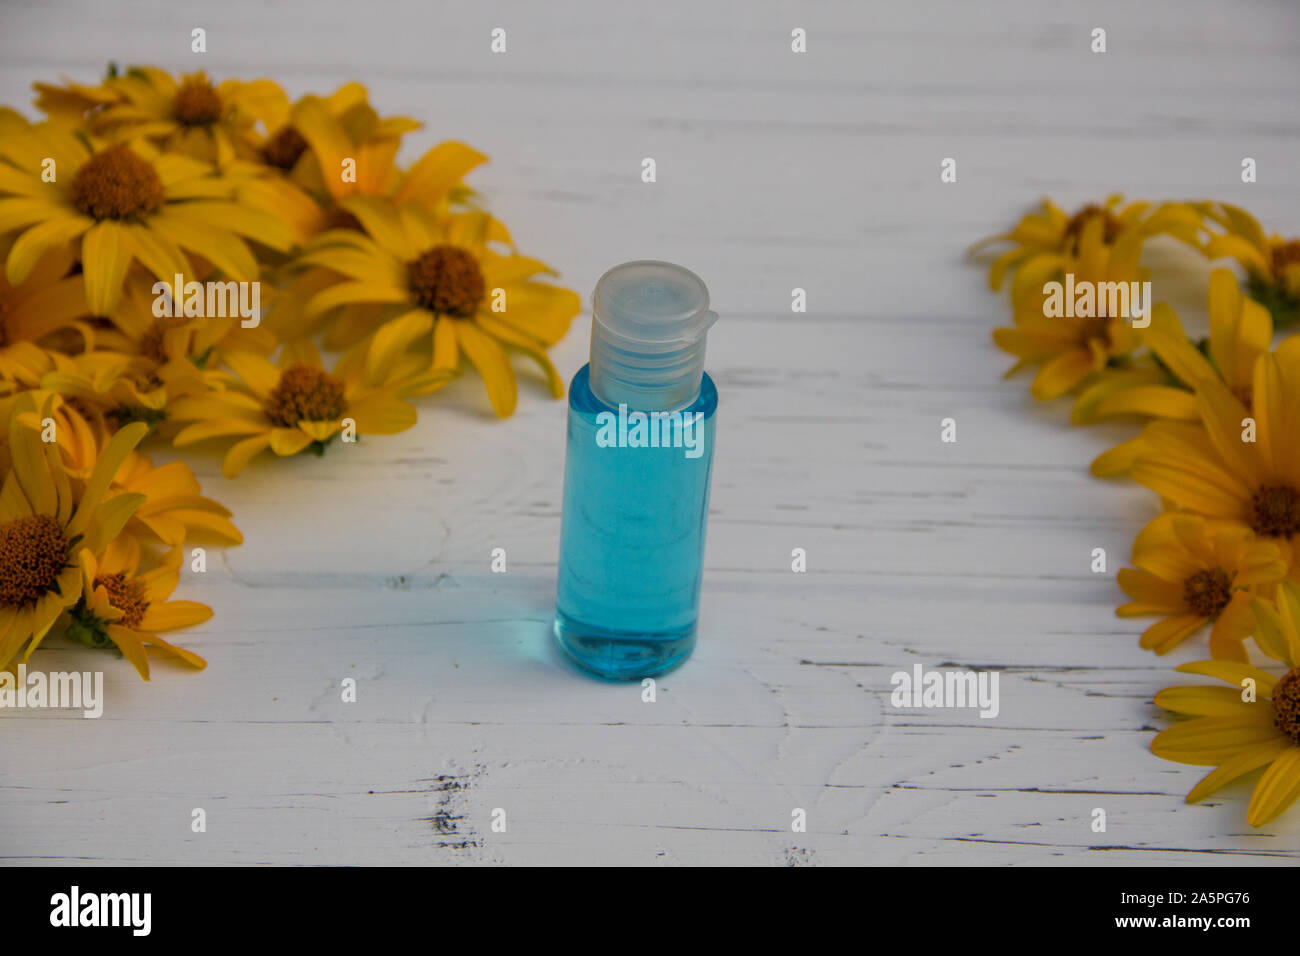 yellow flowers and blue tonic in a bottle on a wooden light background Stock Photo